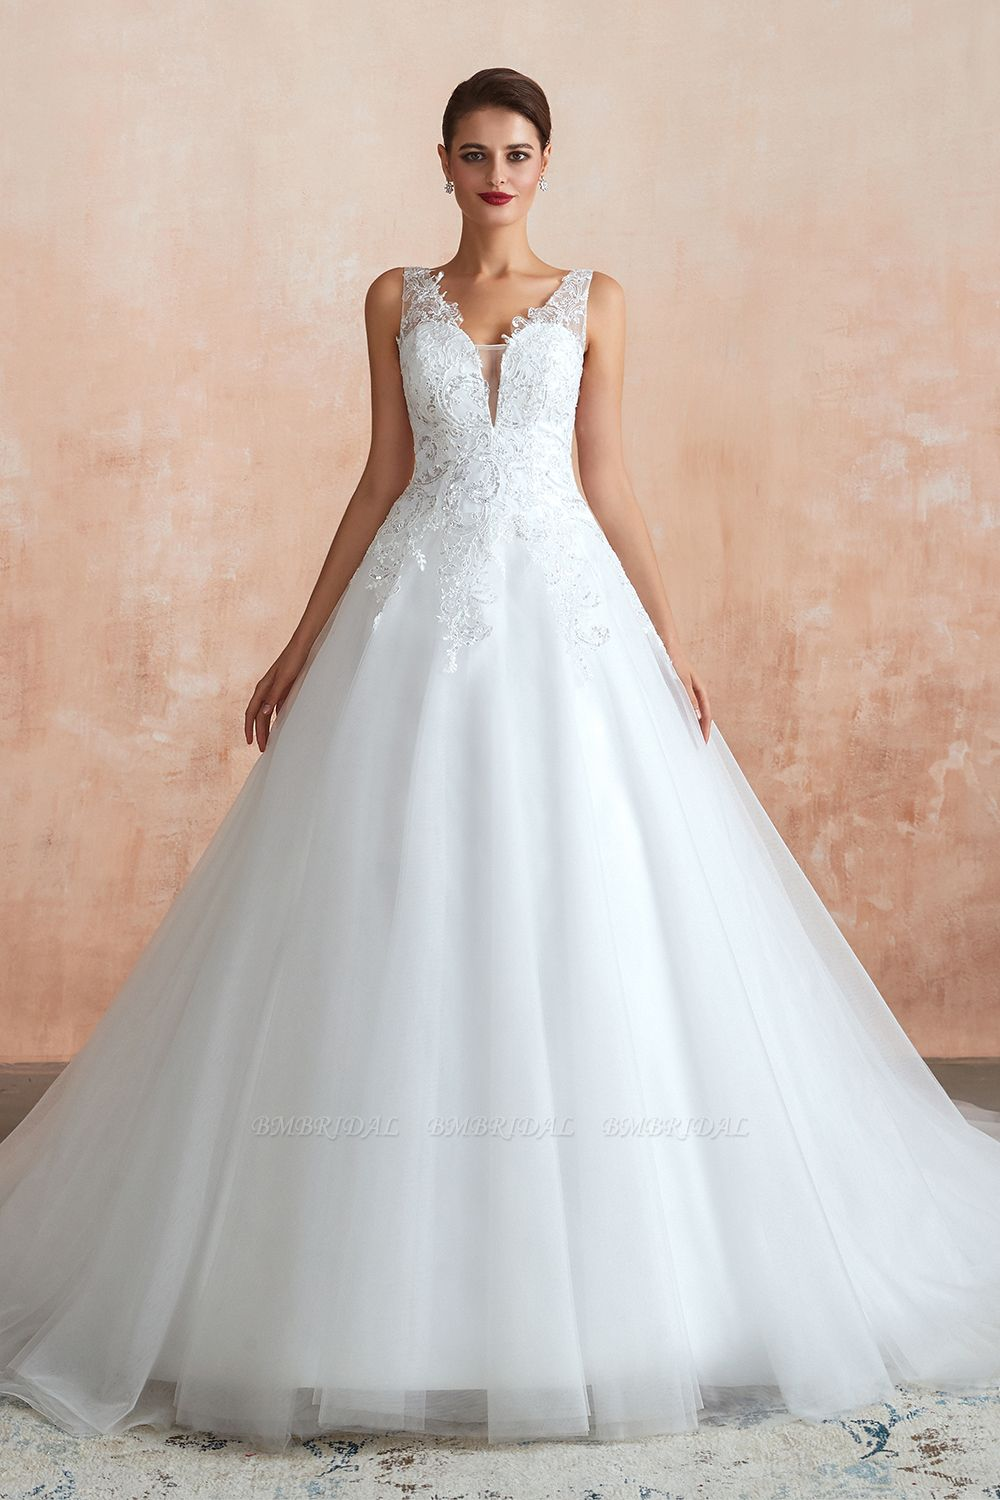 BMbridal Fantastic Tulle Appliques Sleeveless White Wedding Dresses Online